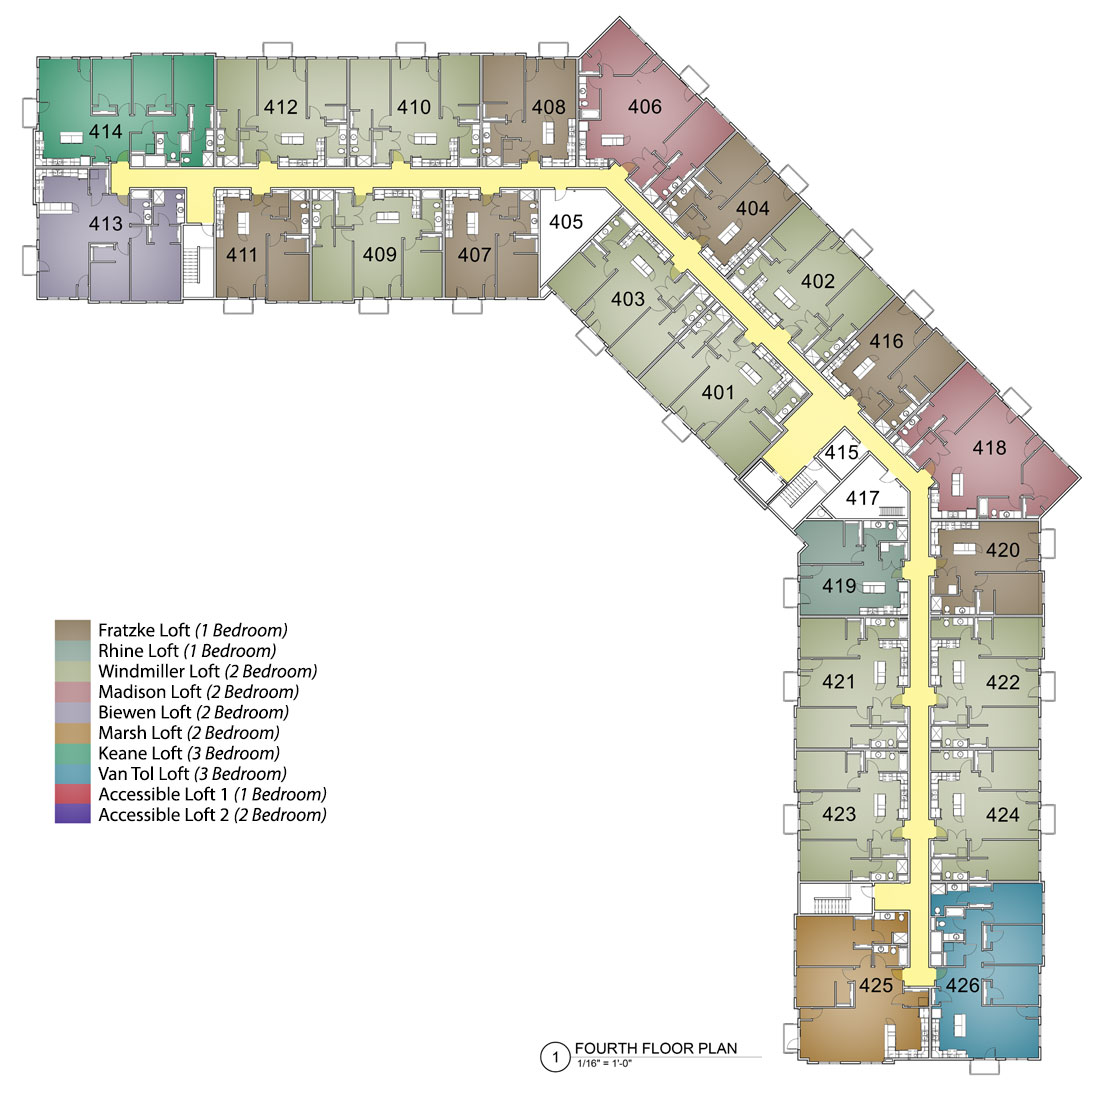 Fourth Floor Layout M2 Lofts - Hotspot